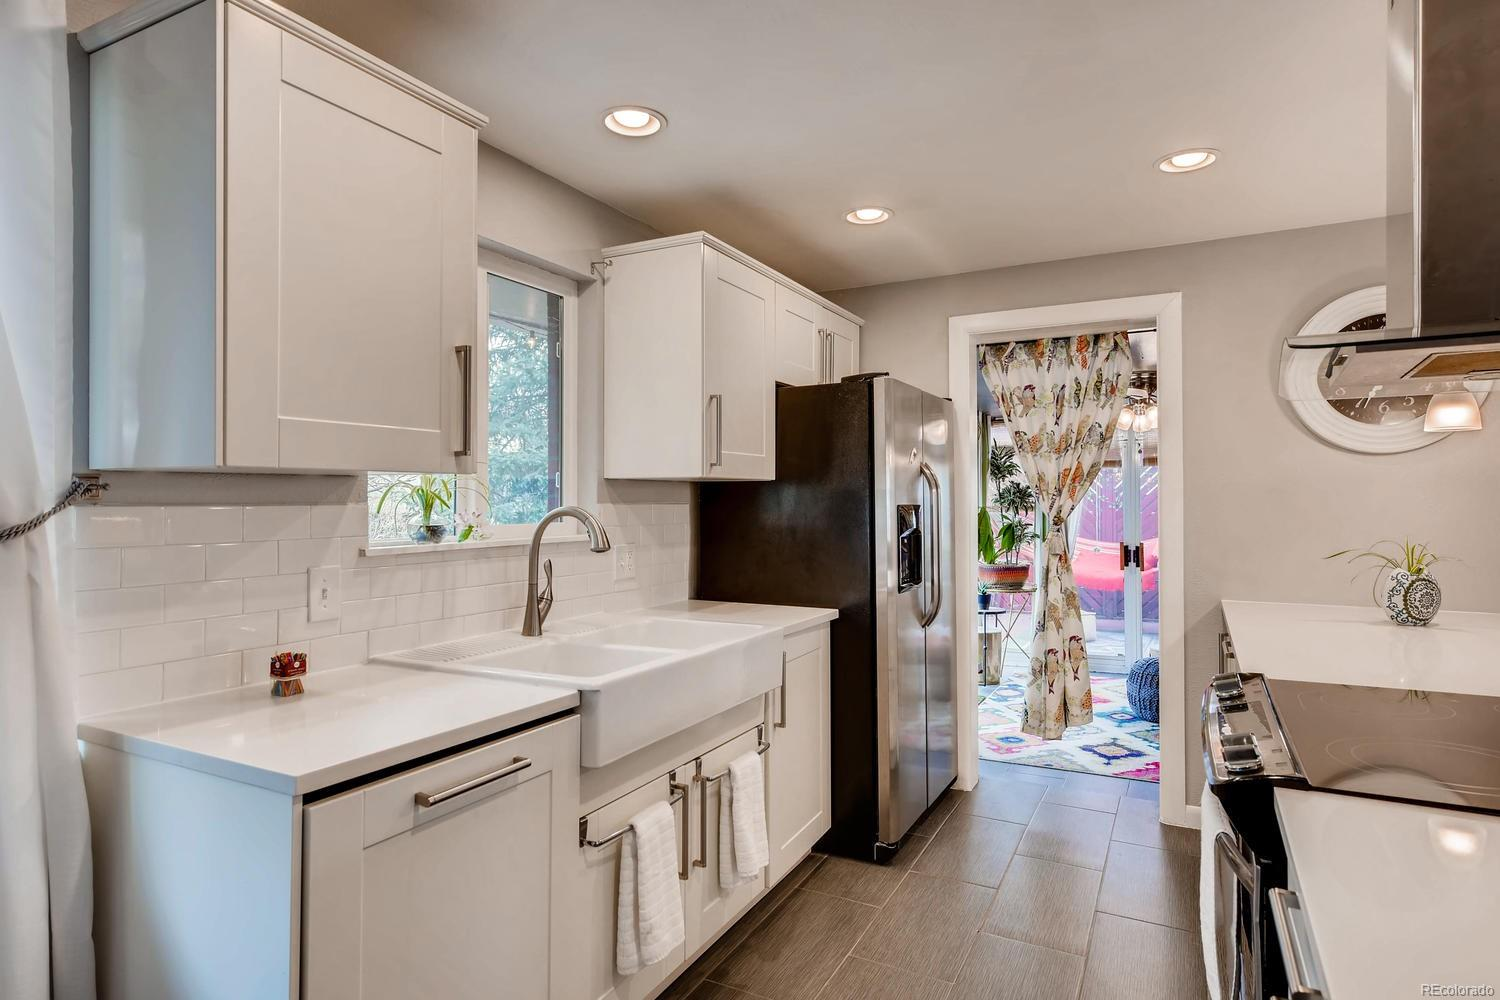 Clean & contemporary - it's hard to beat this kitchen!